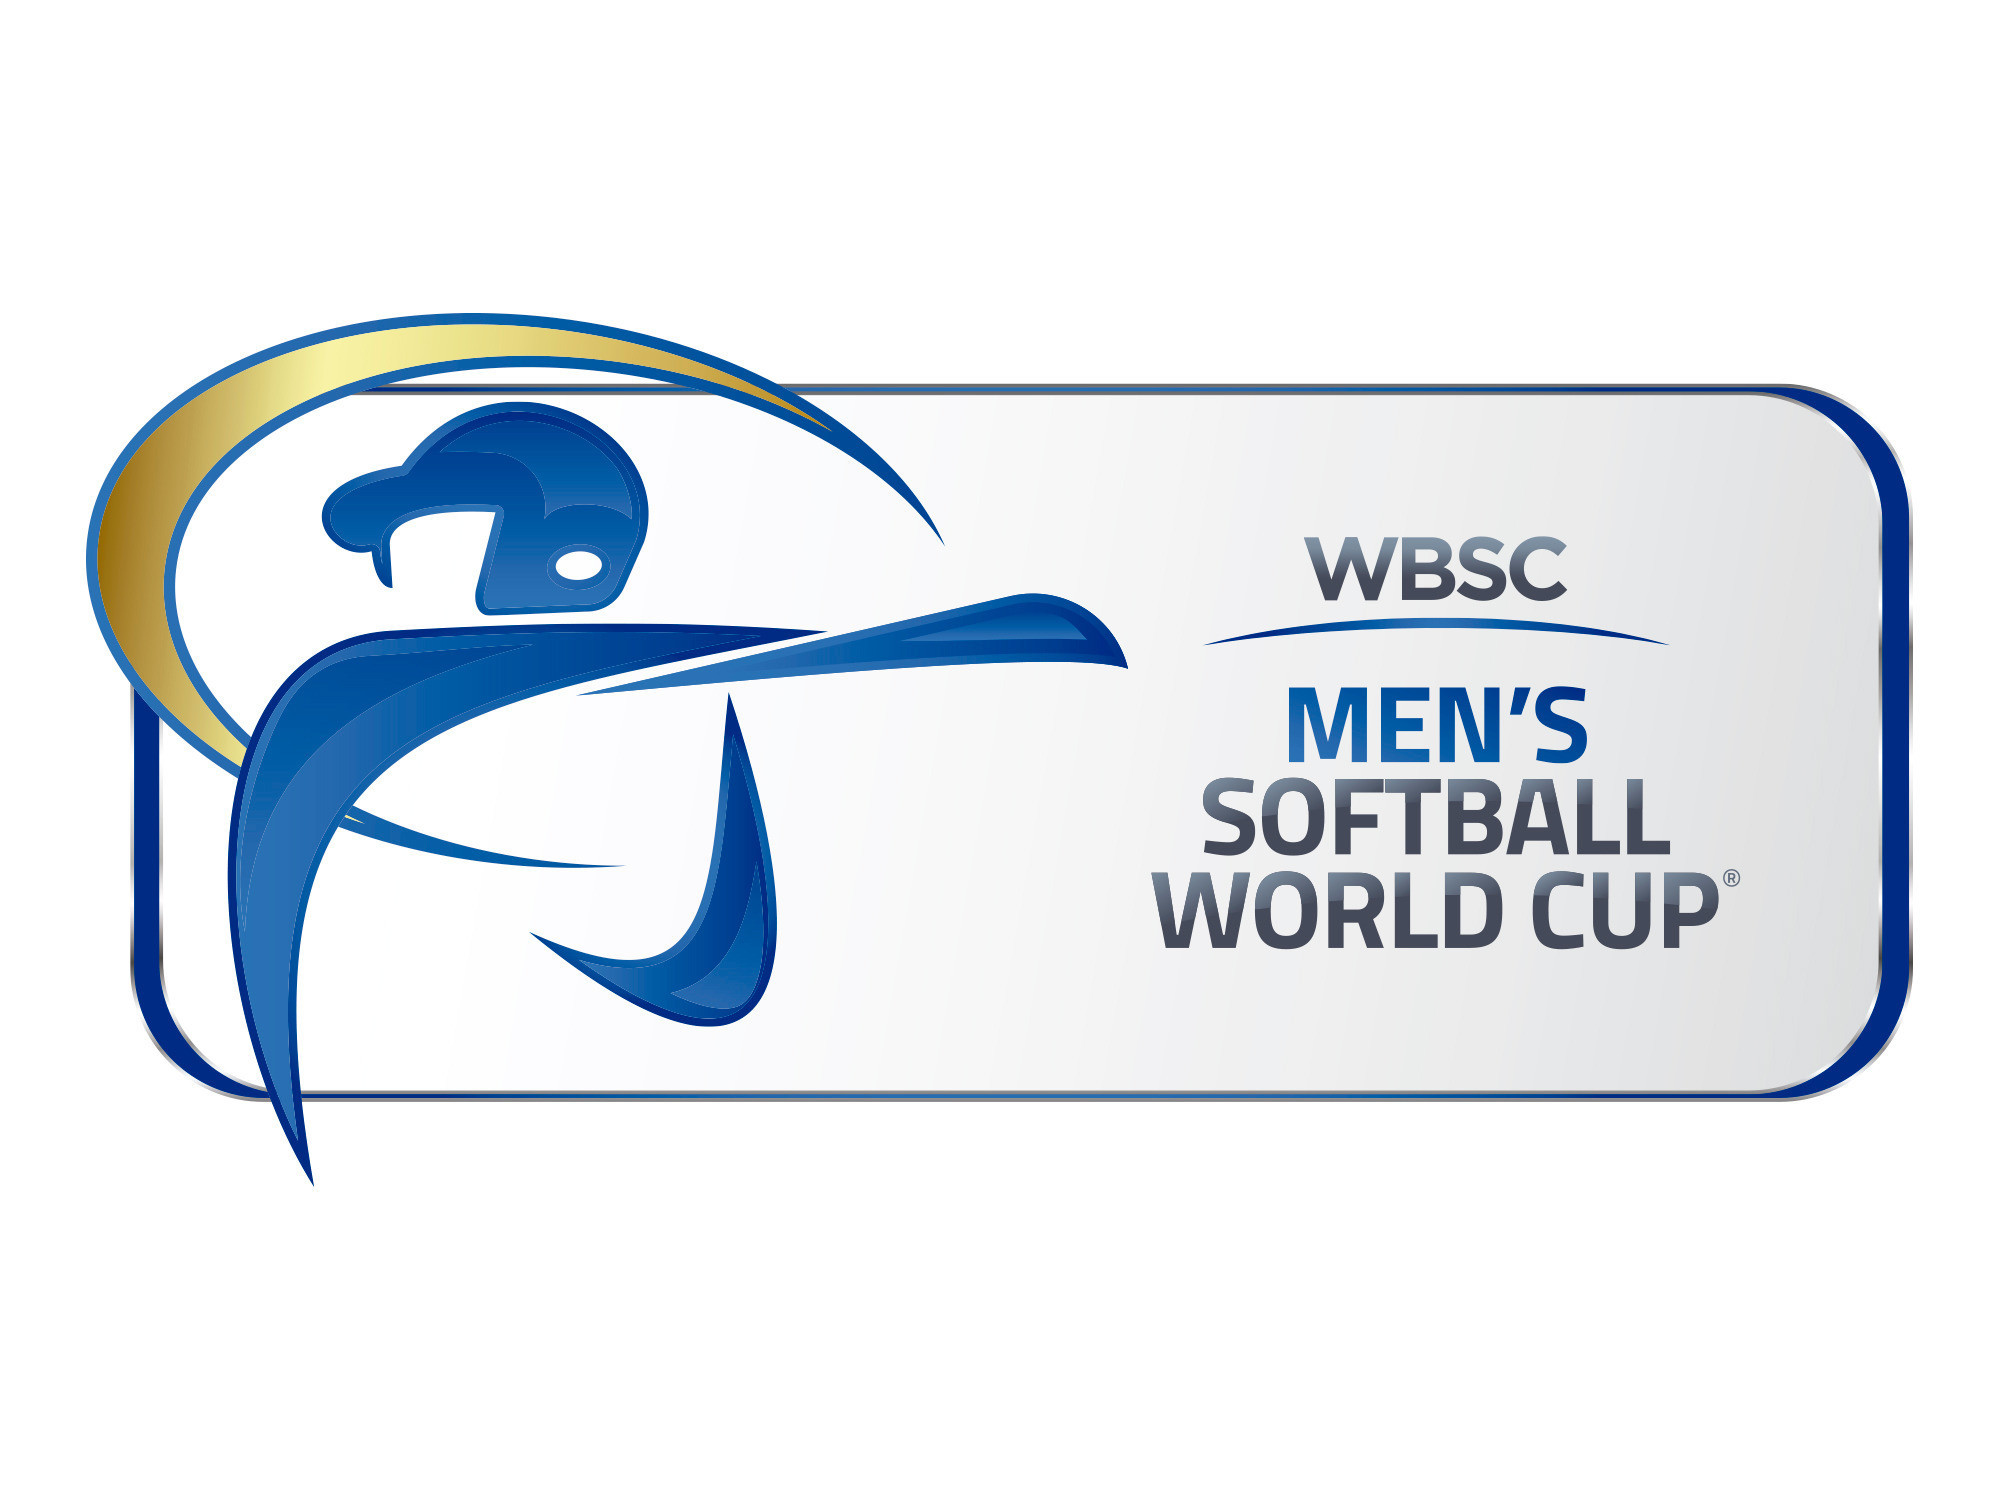 Emblem for inaugural WBSC Men's Softball World Cup revealed